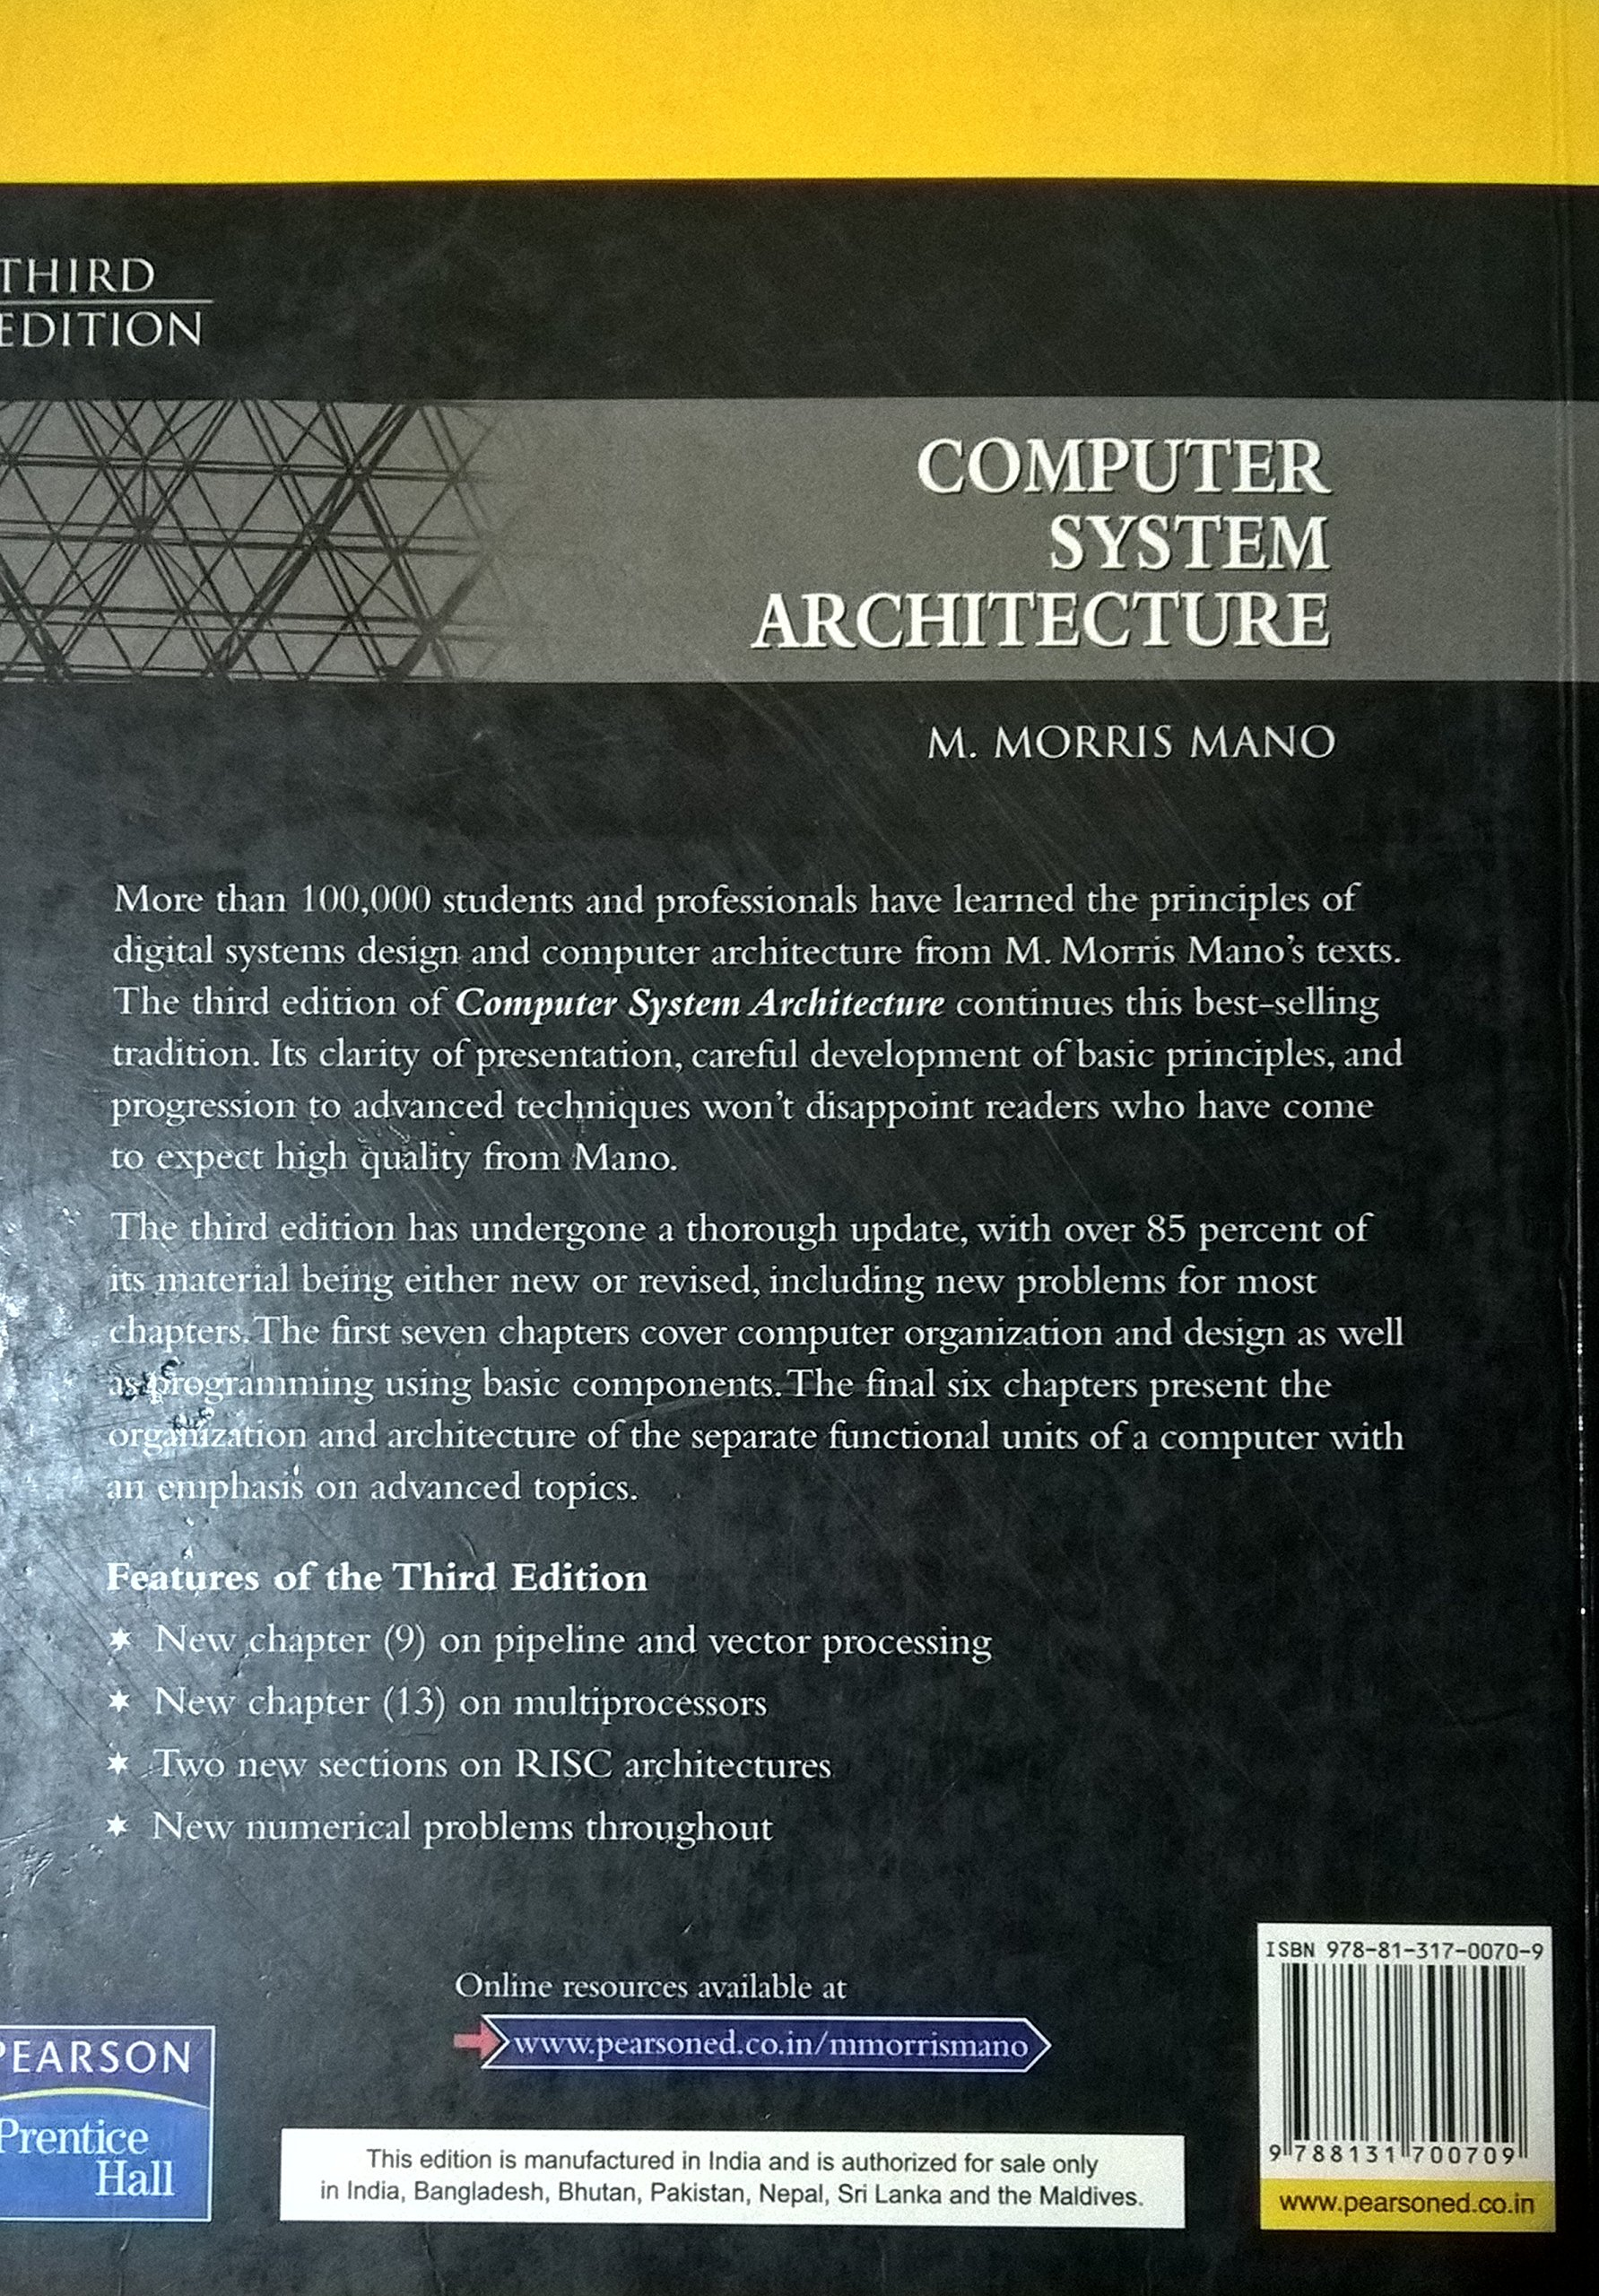 Computer Organization And Architecture By M Morris Mano Pdf